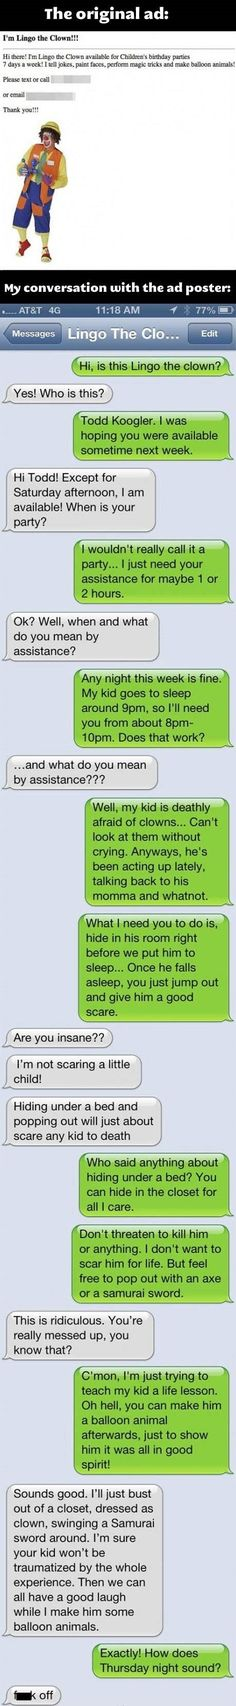 OMG! Im such a horrible parent because I would want to do this